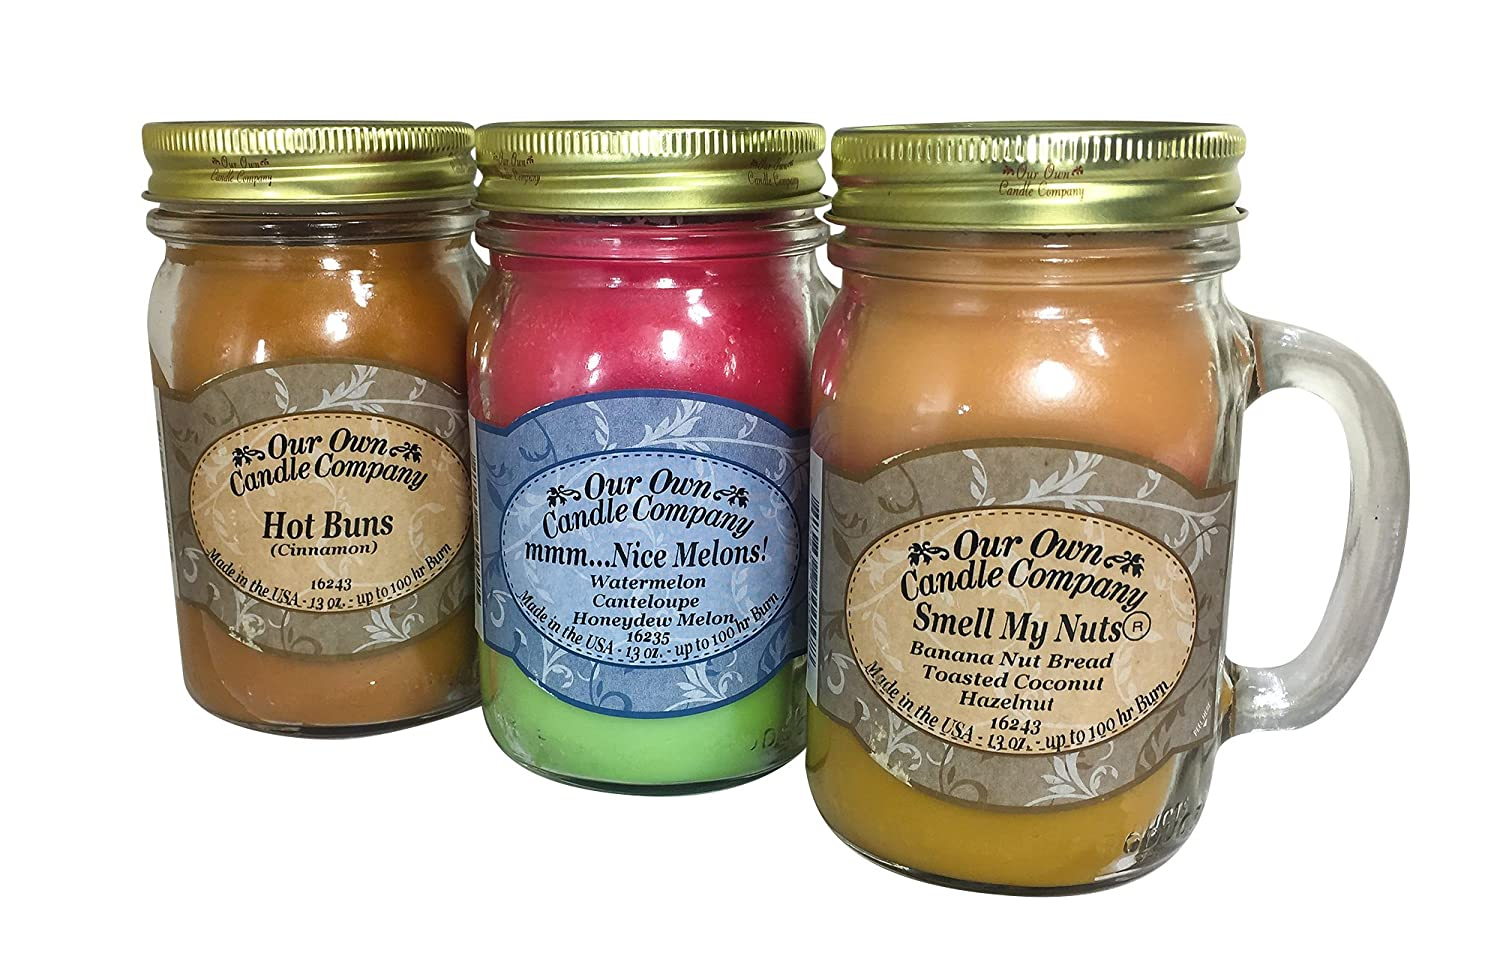 Our Own Candle Company Smell My Nuts, Nice Melons, and Hot Buns - Sassy Pack Scented Mason Jar Candles, 13 oz (3 Pack)